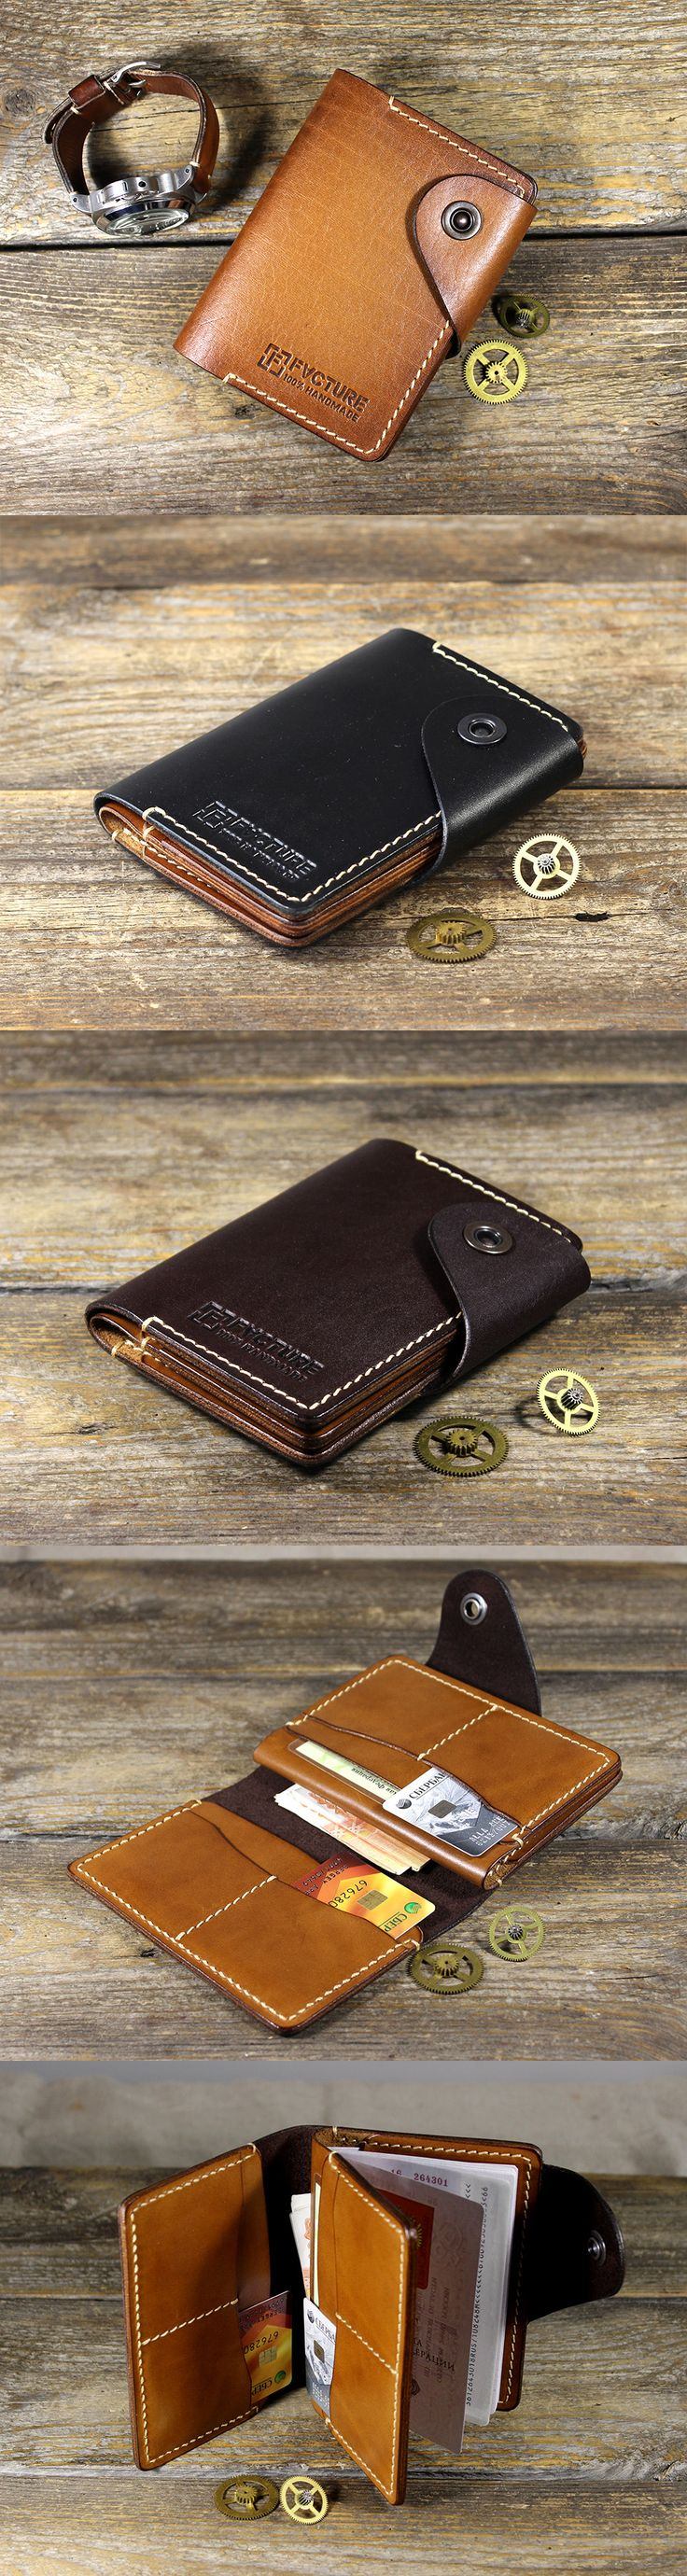 Leather cover for passport and other documents. Original accessory for necessary discount cards. Saddle skin, handwork. Extremely durable product. CardHolder CH-02. Size: 4.13'' by 5.51'' (10.5 by 14 cm). It is possible to apply your logo. For all questions, write +7 937 793-75-77 (Viber, WhatsApp) or ffacture@mail.ru